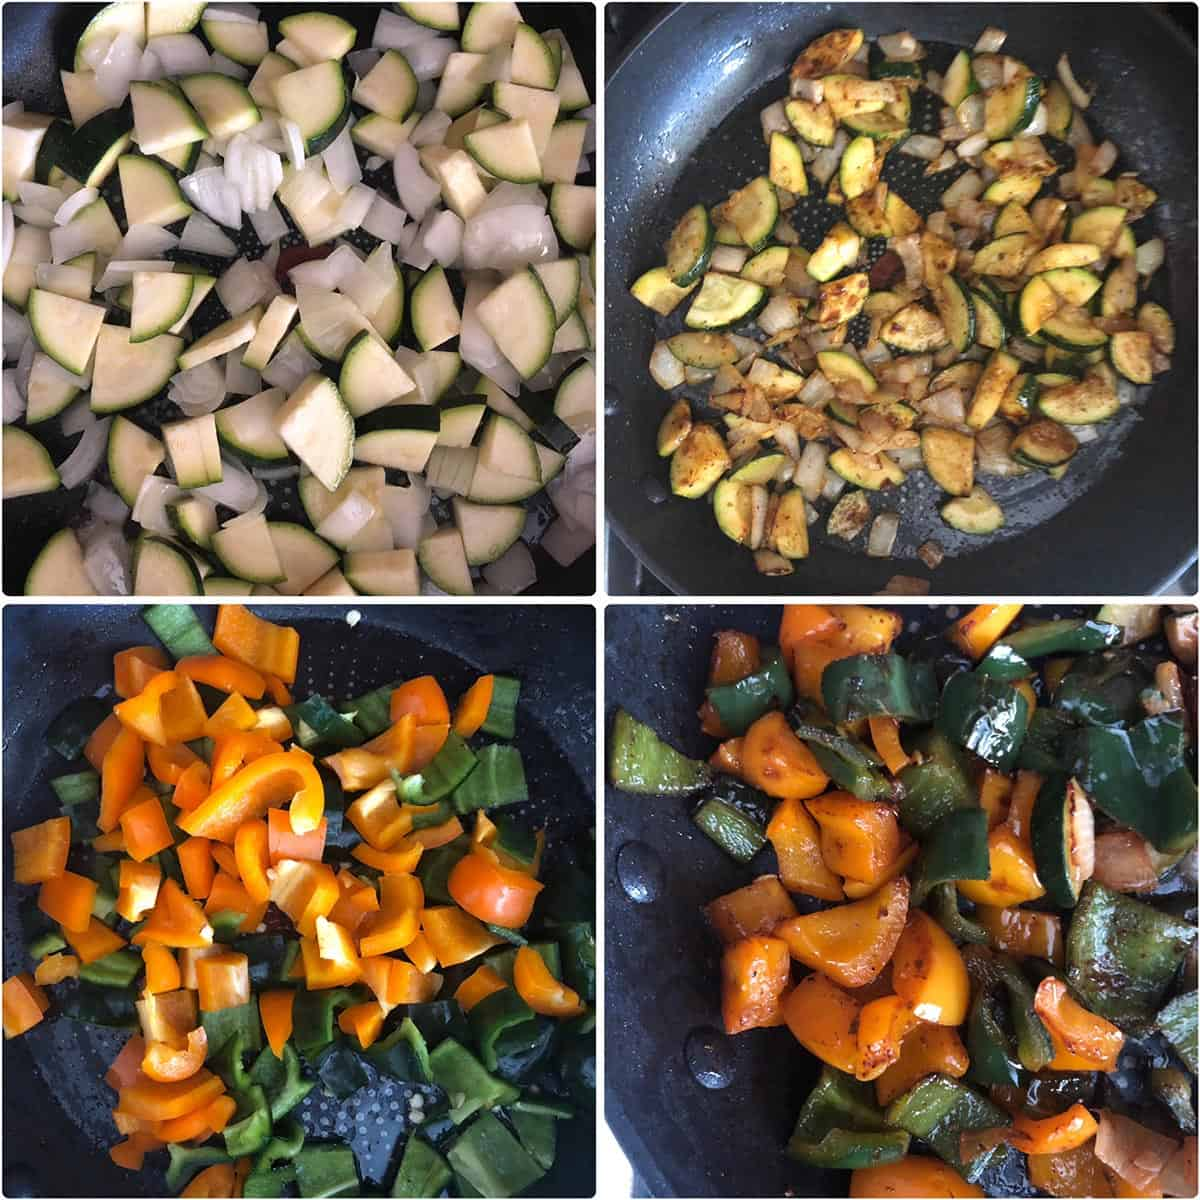 Photos of vegetables before and after sautéing